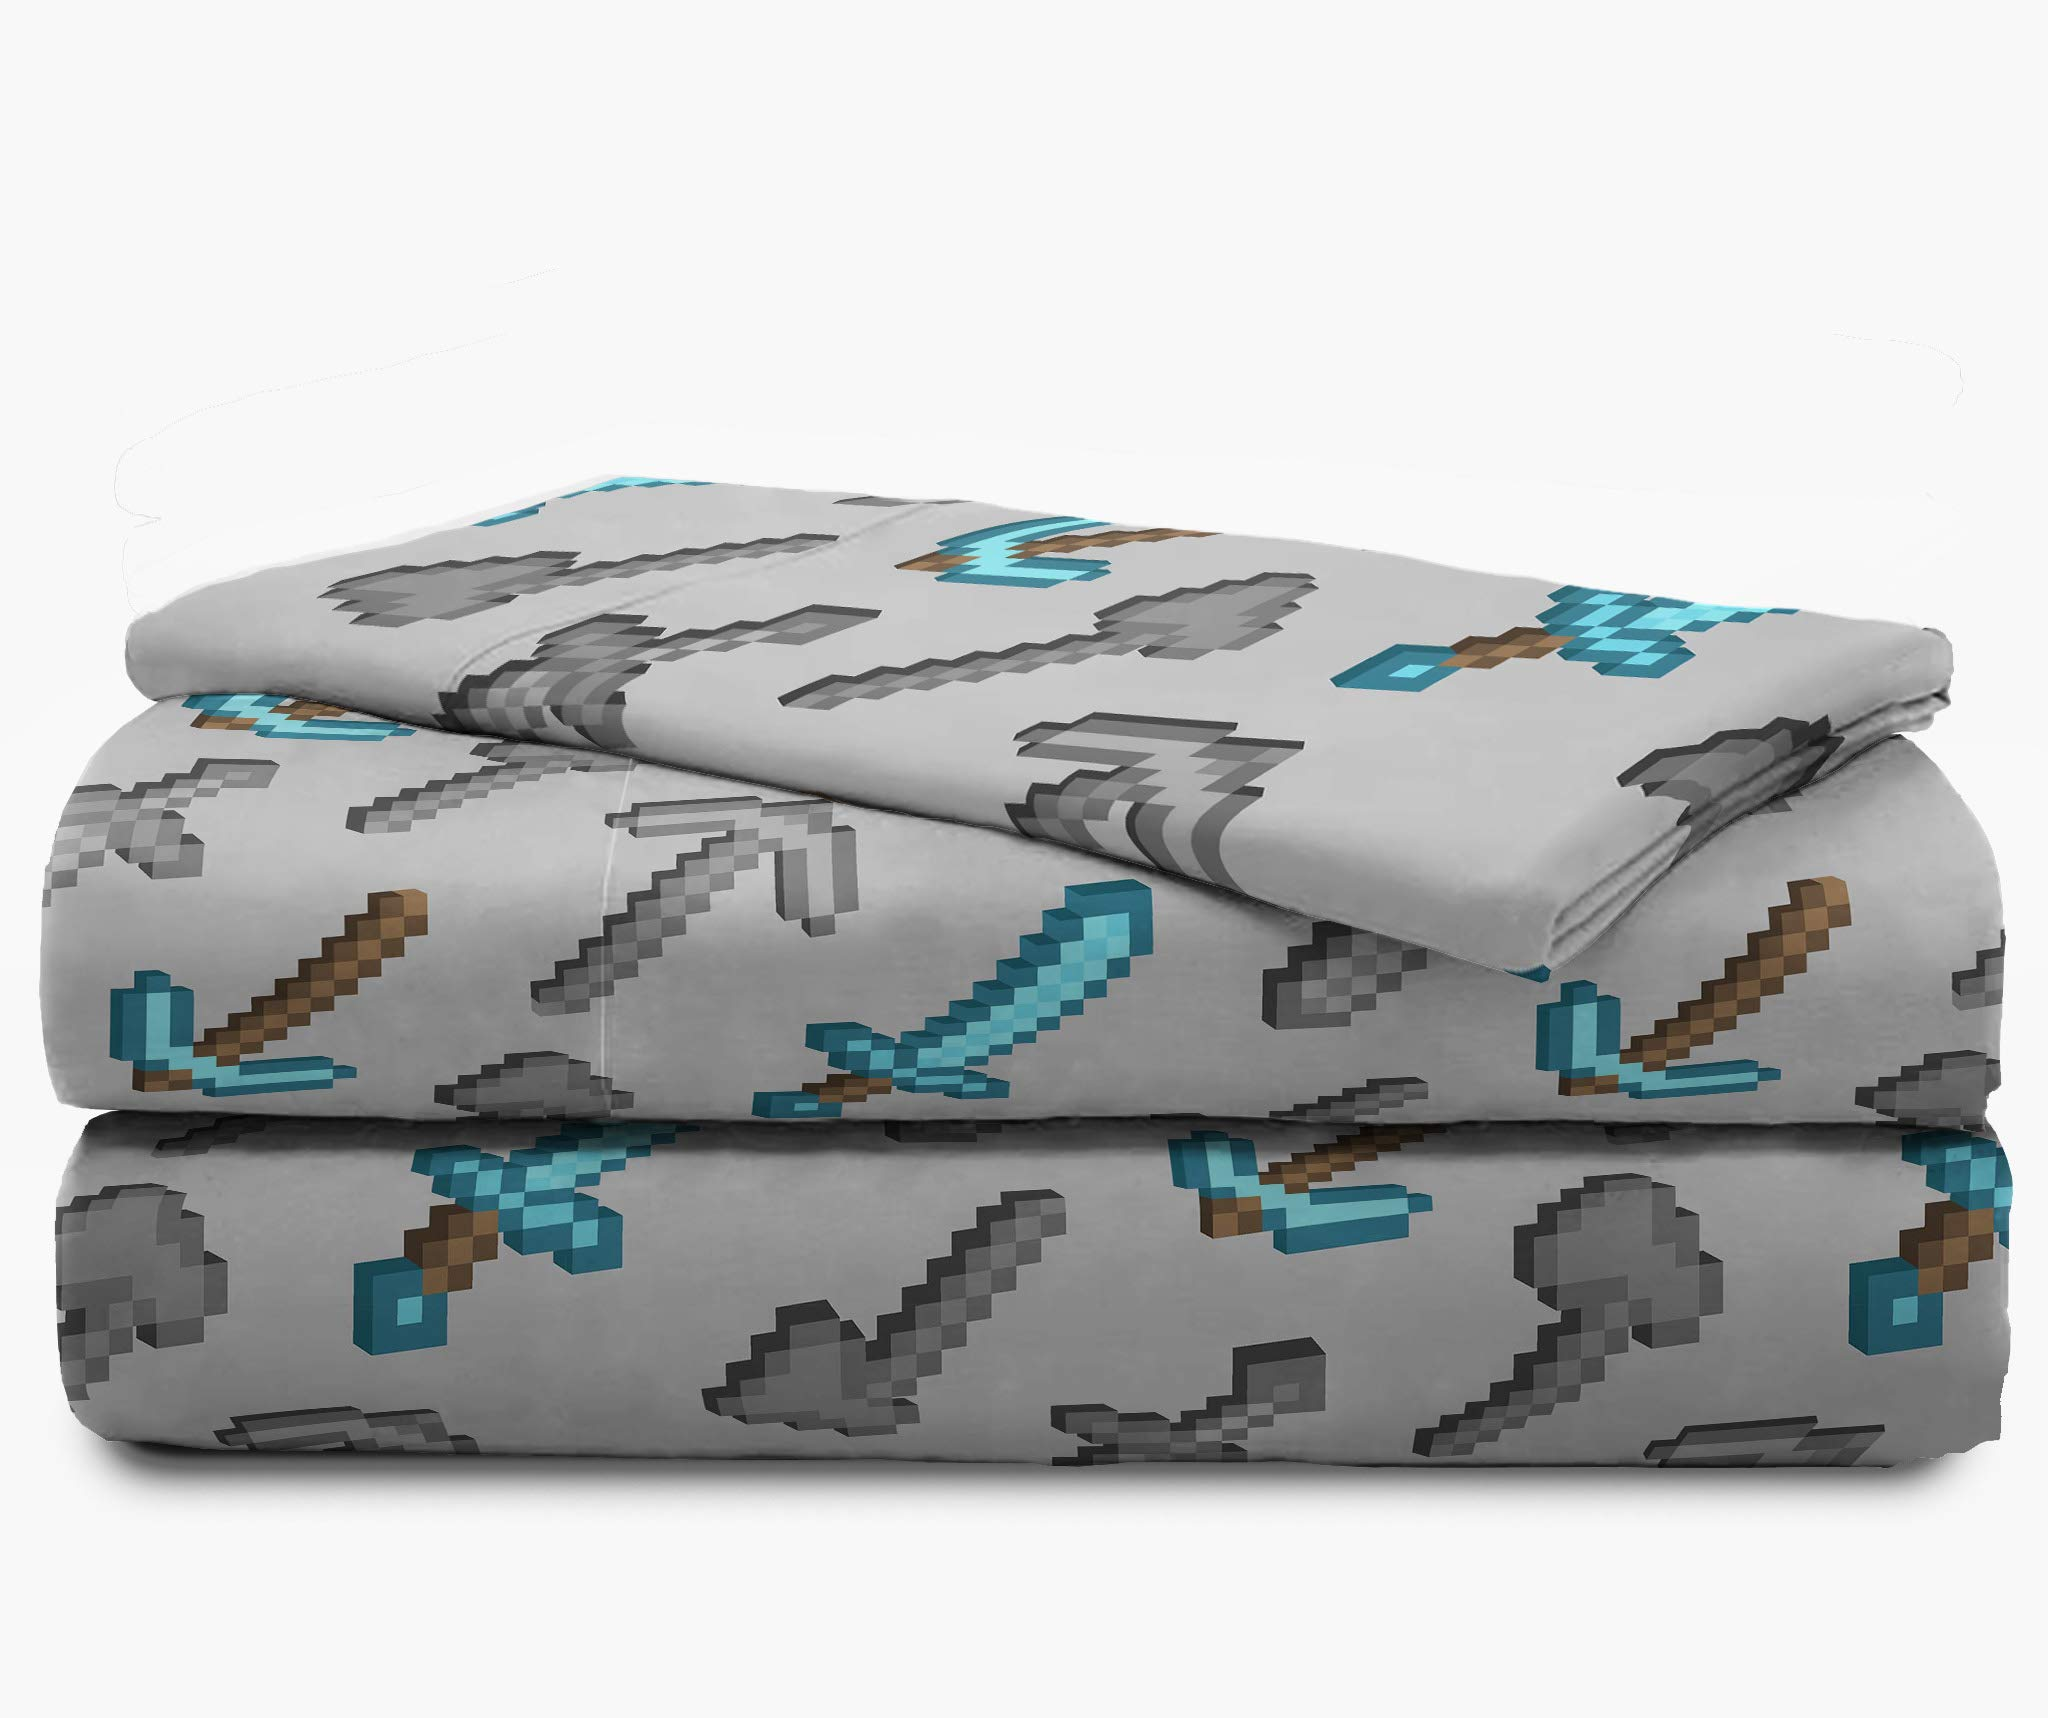 Jay Franco Minecraft Isometric 4 Piece Twin Bed Set - Includes Reversible Comforter & Sheet Set - Bedding Features Creeper - Super Soft Fade Resistant Polyester - (Official Minecraft Product) by Jay Franco (Image #5)